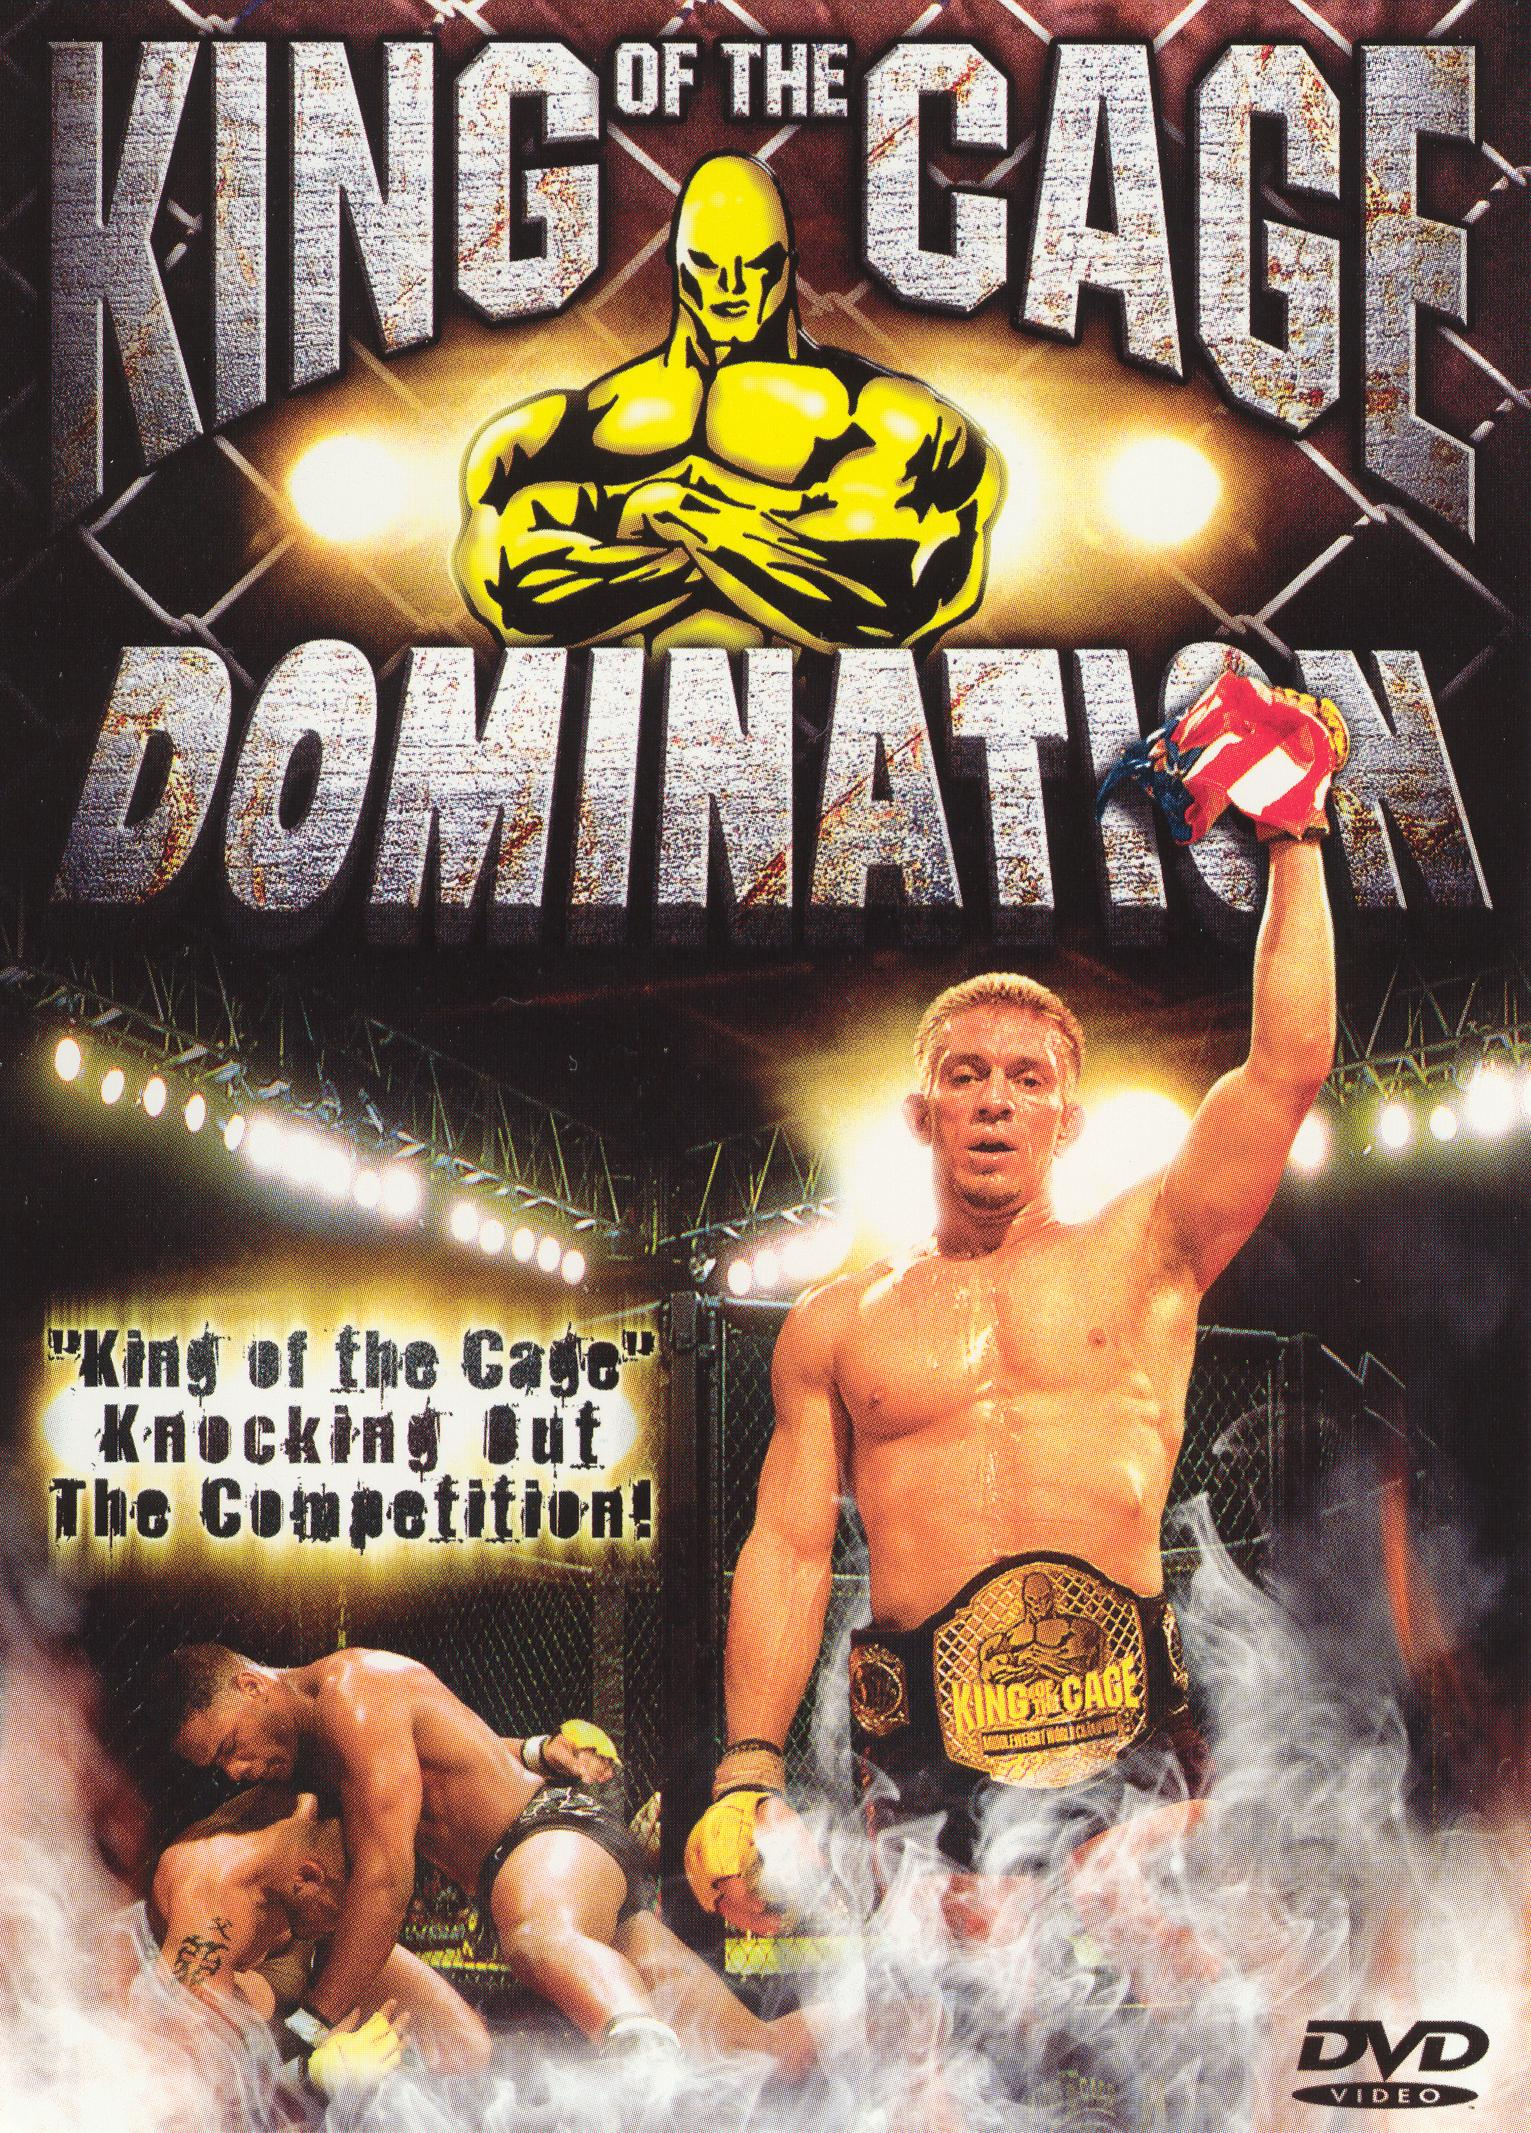 King of the Cage: Domination